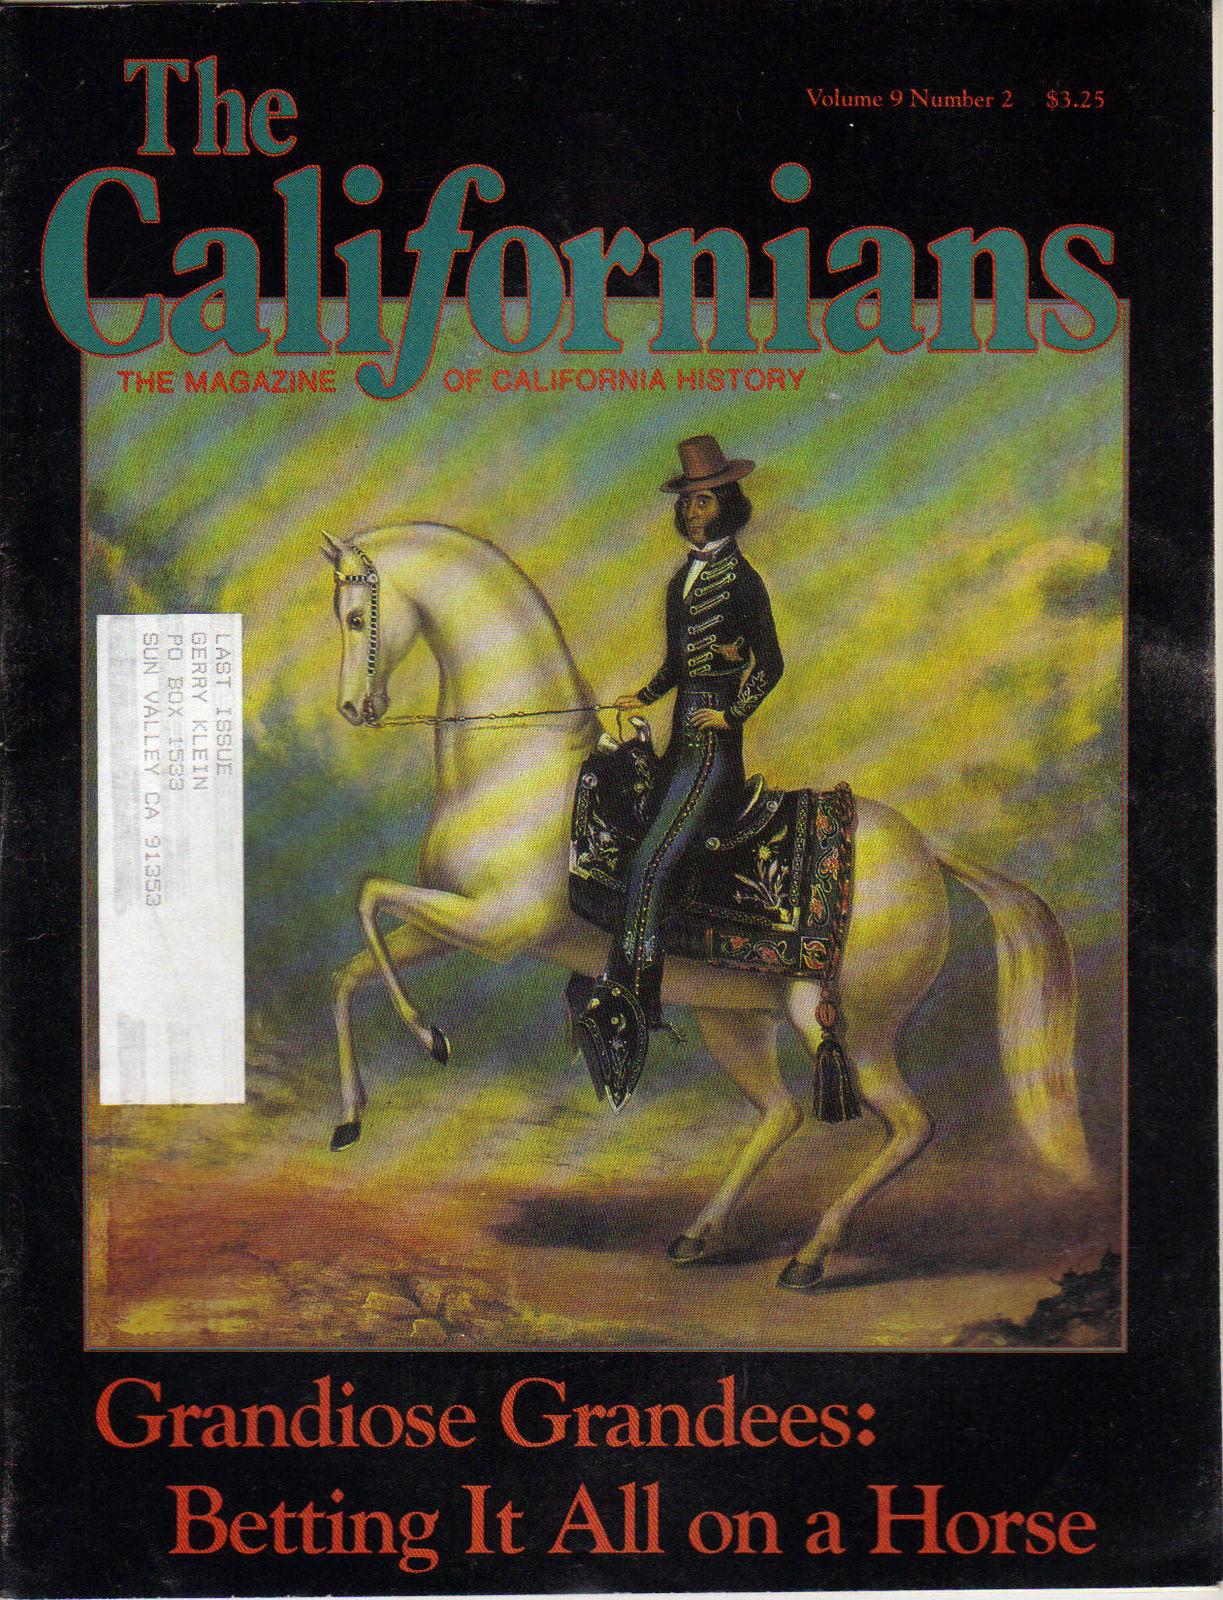 The Californians Magazine, The Magazine of California History - 5 Back-Issues